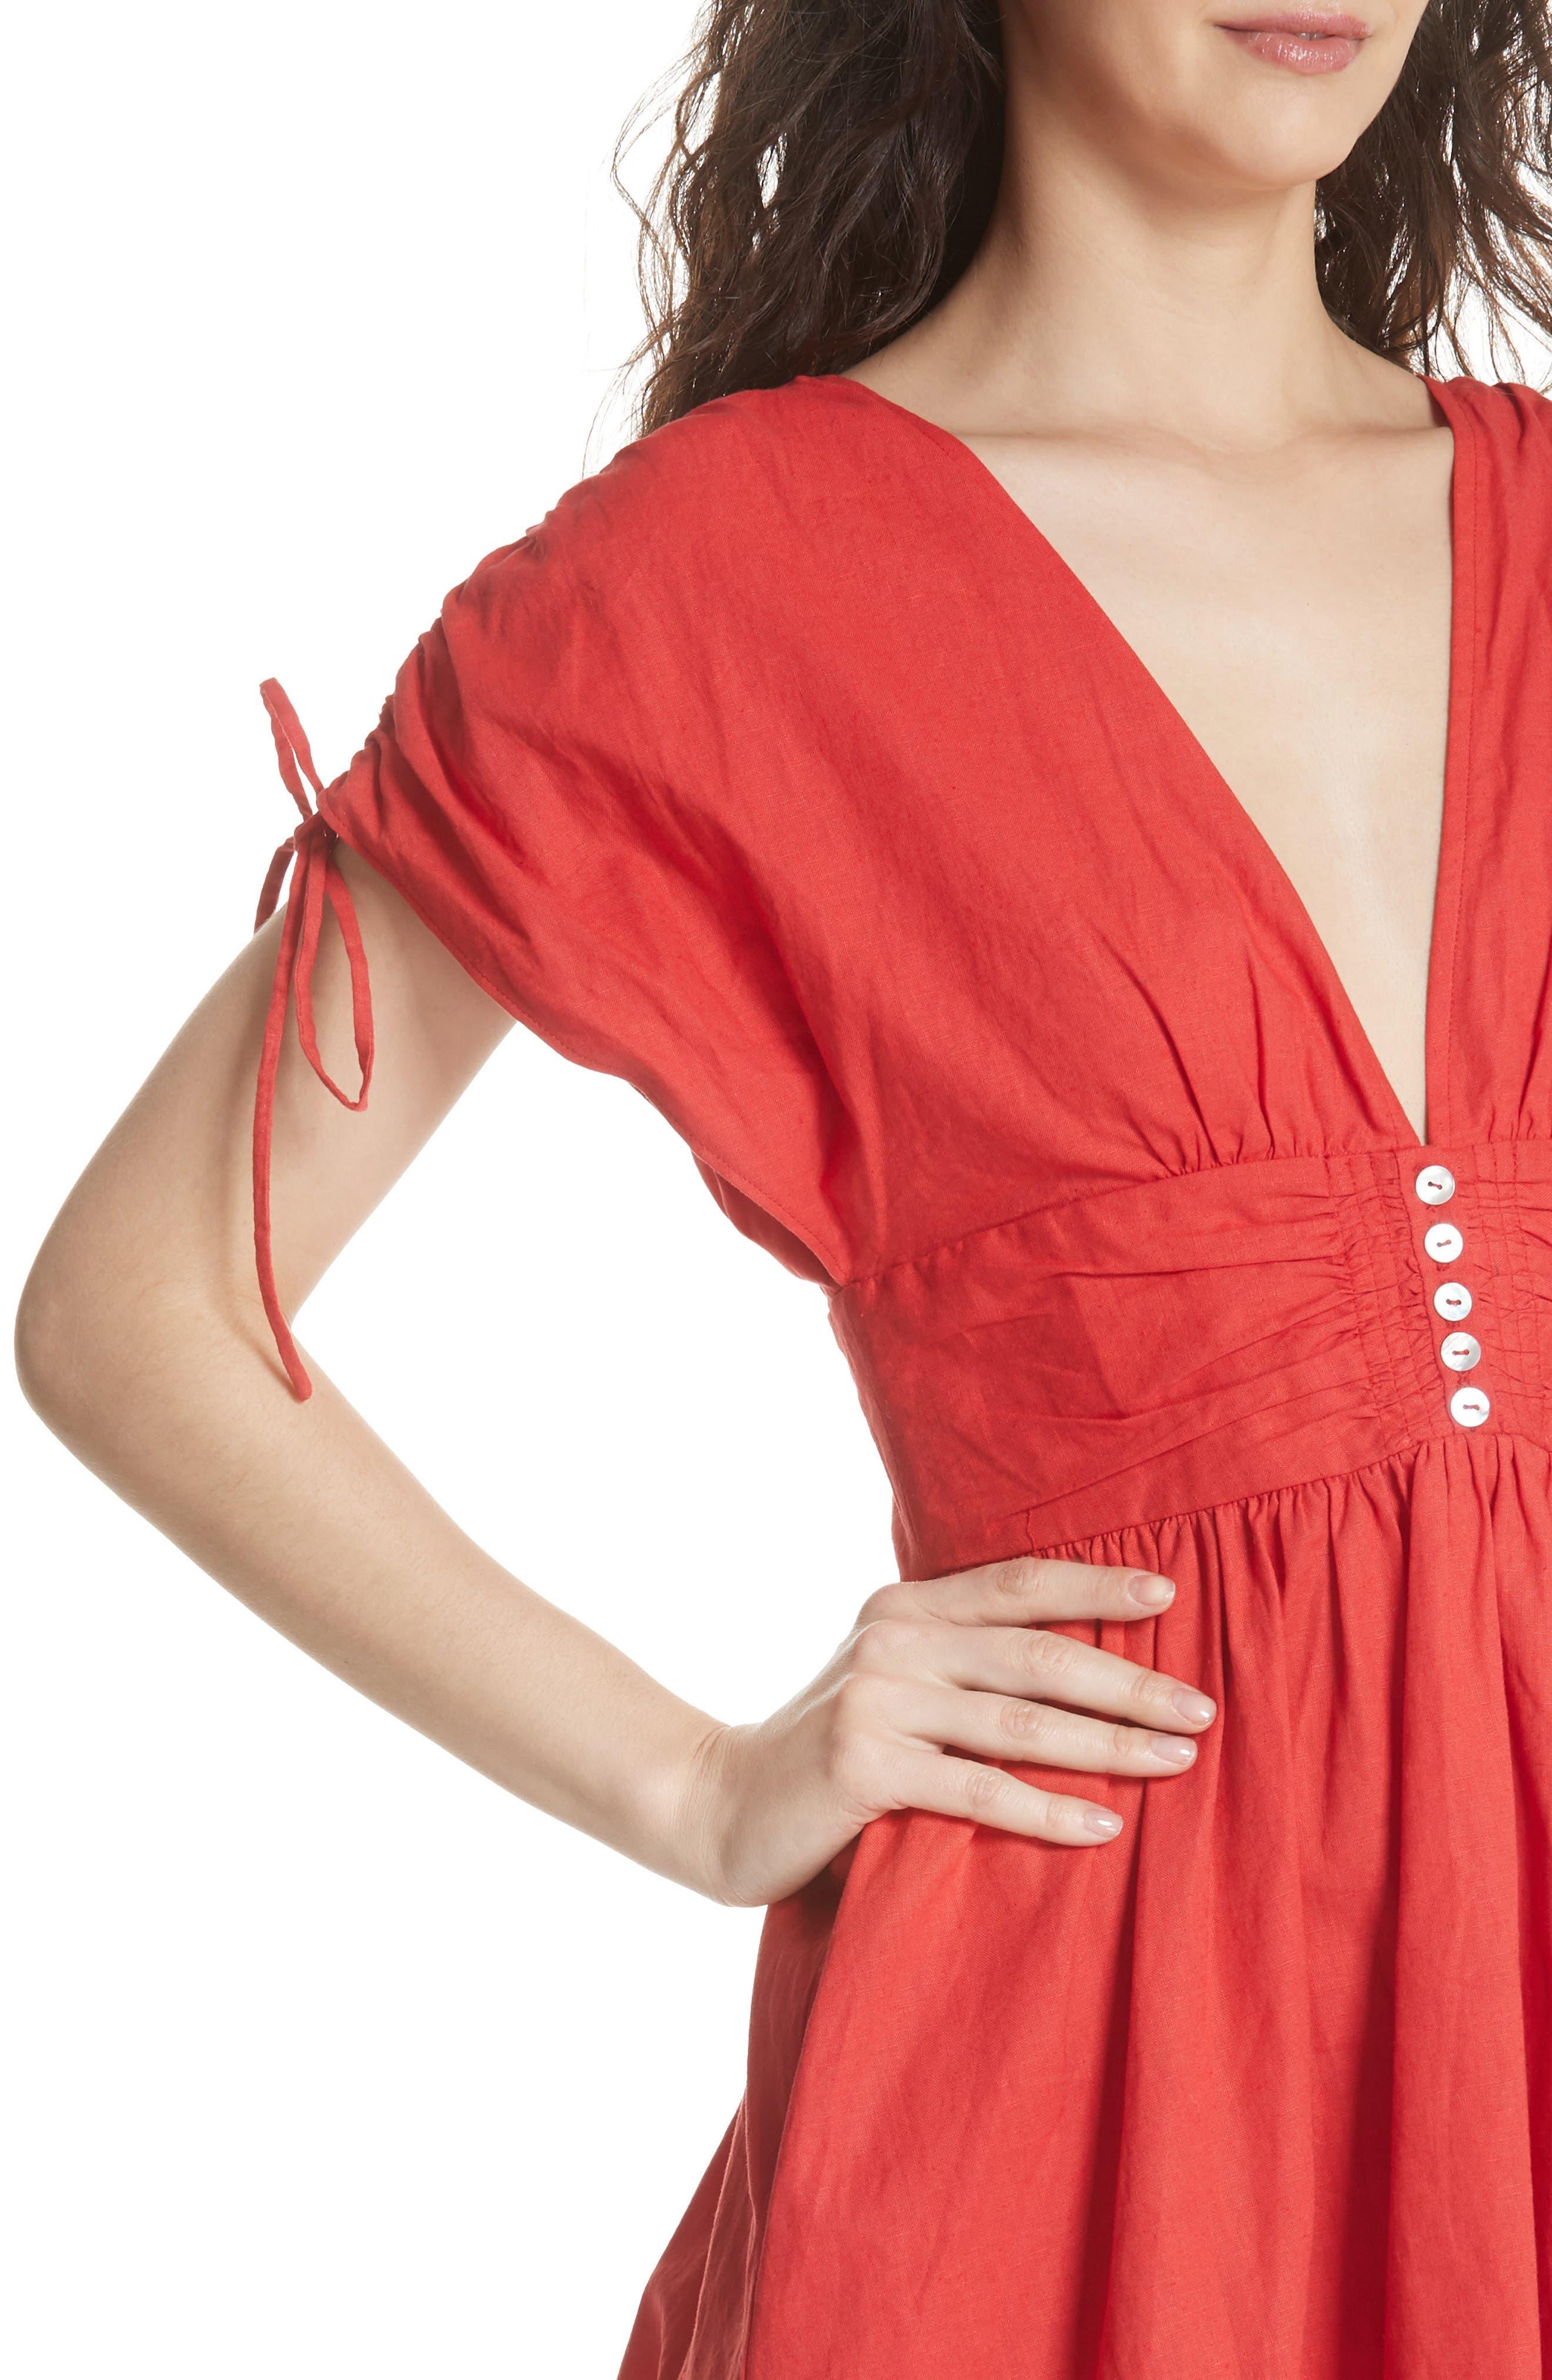 Roll the Dice Minidress,                             Alternate thumbnail 4, color,                             Red